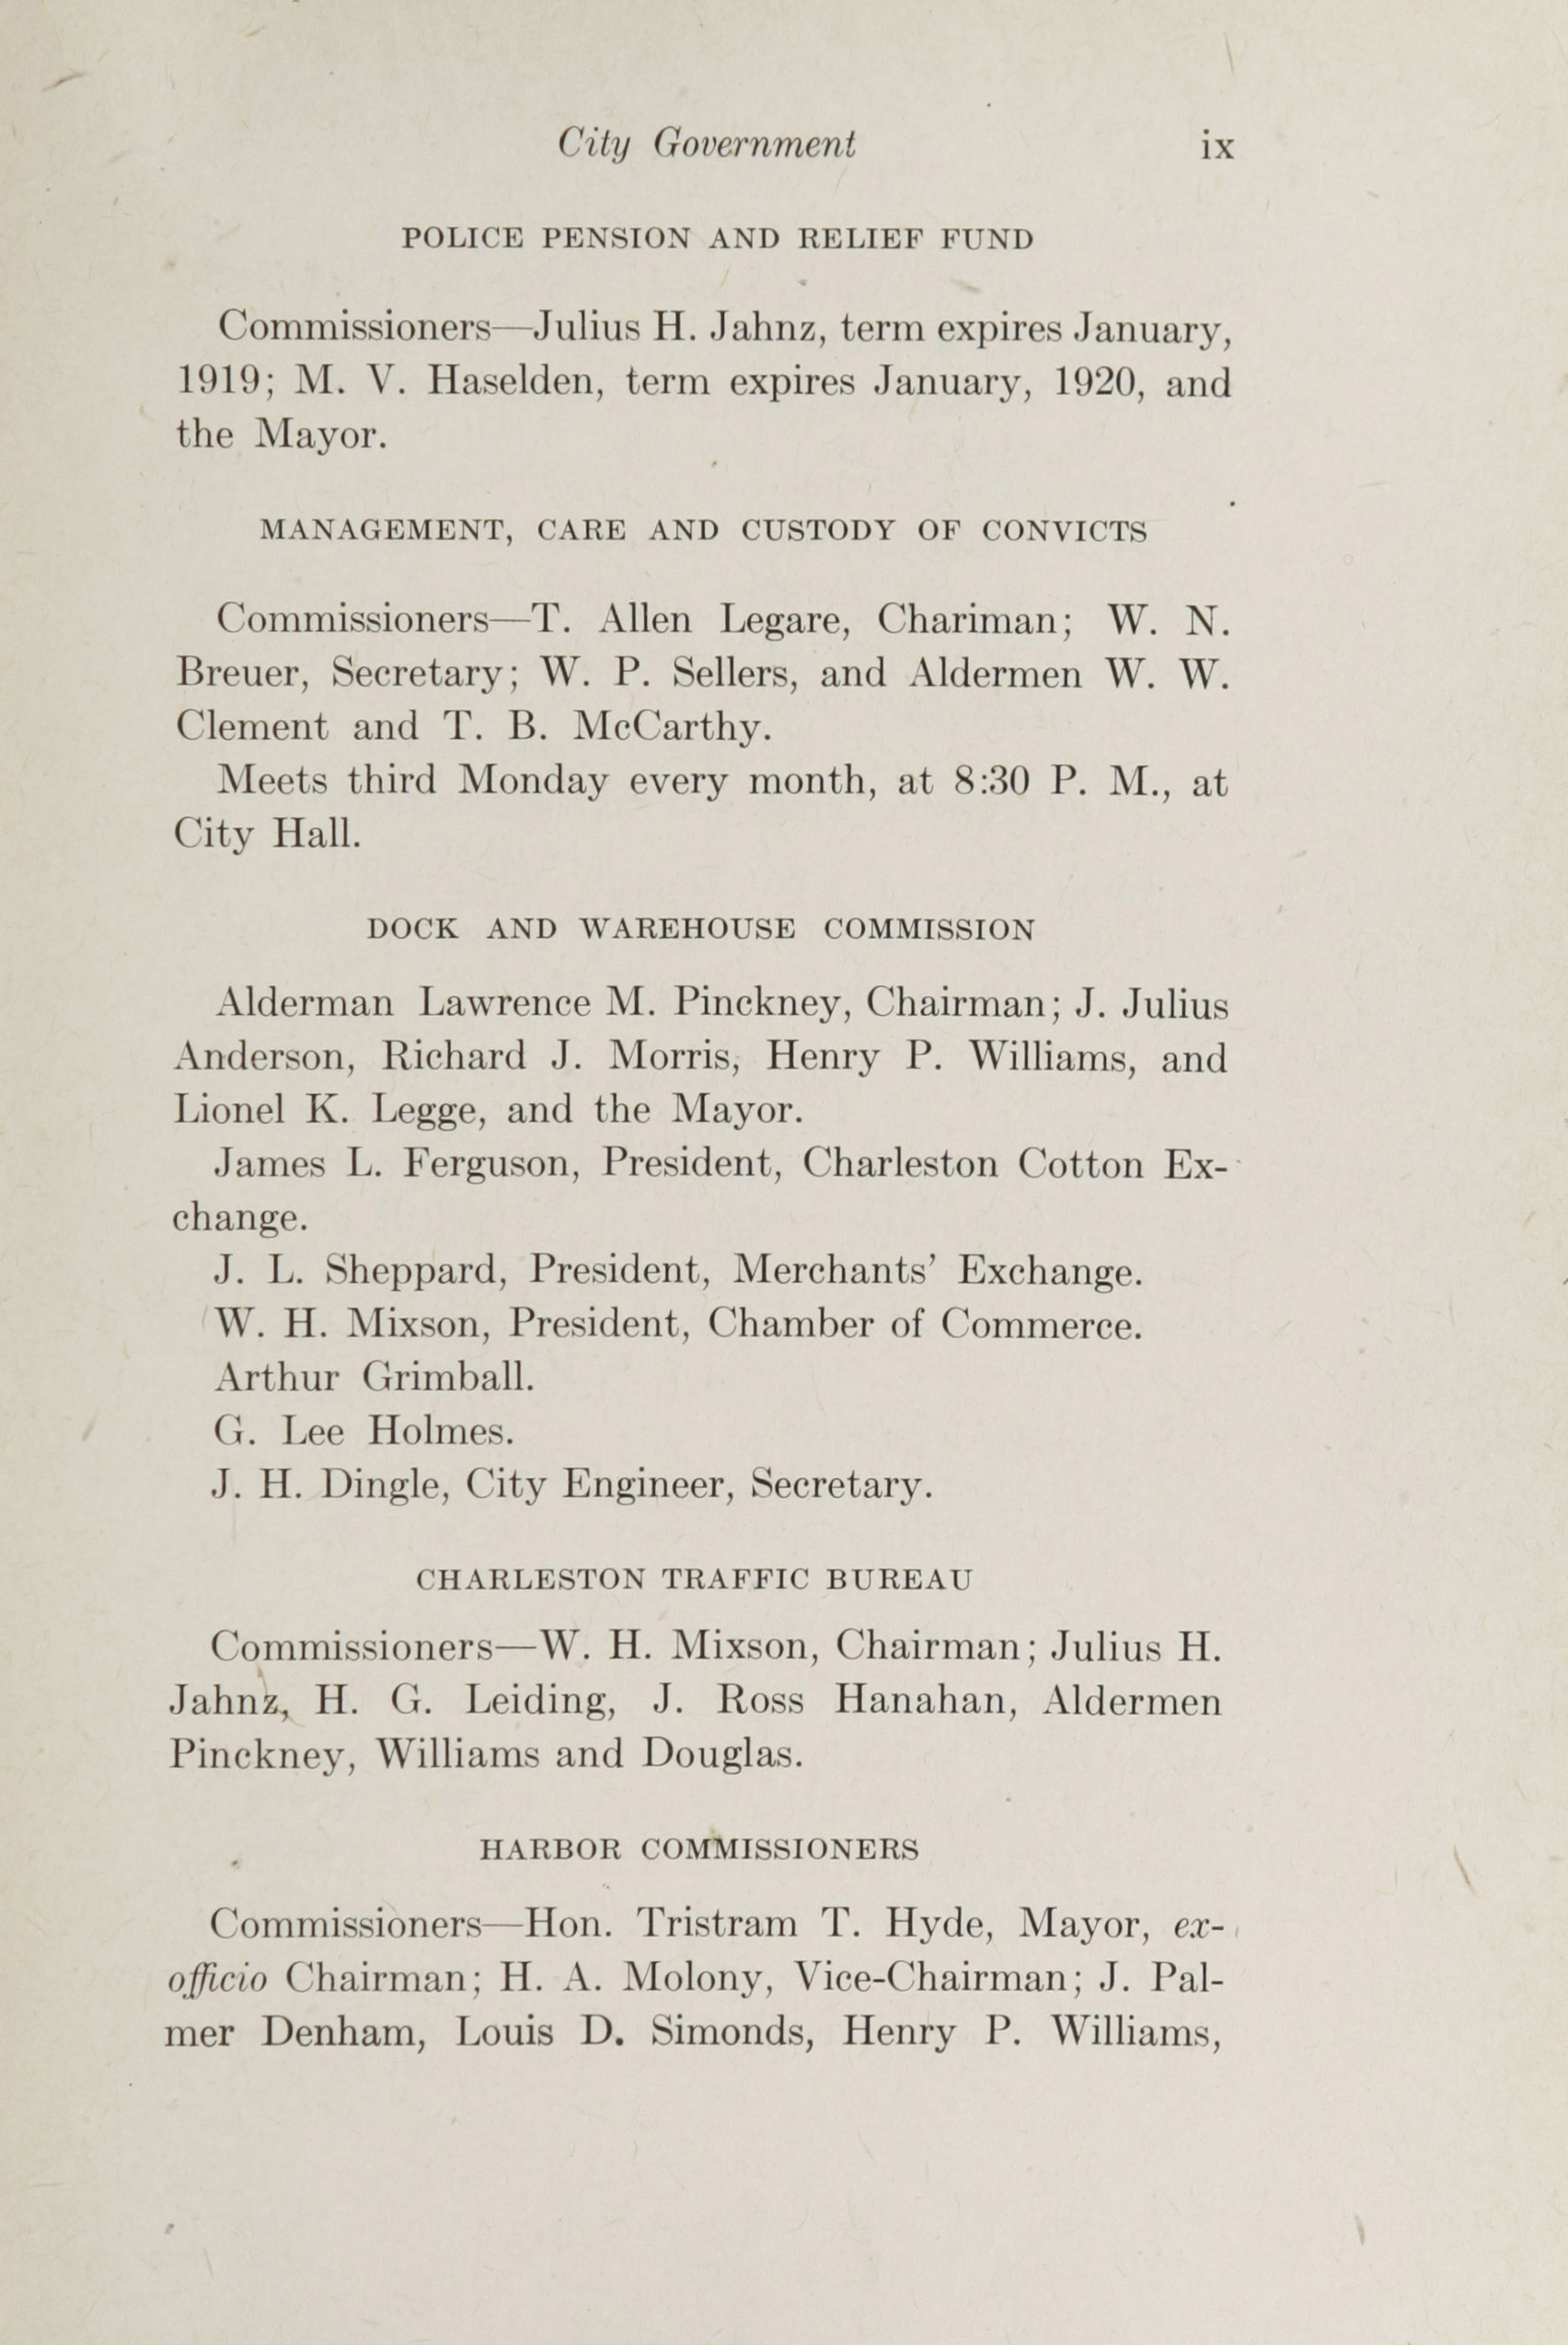 Charleston Yearbook, 1918, page ix